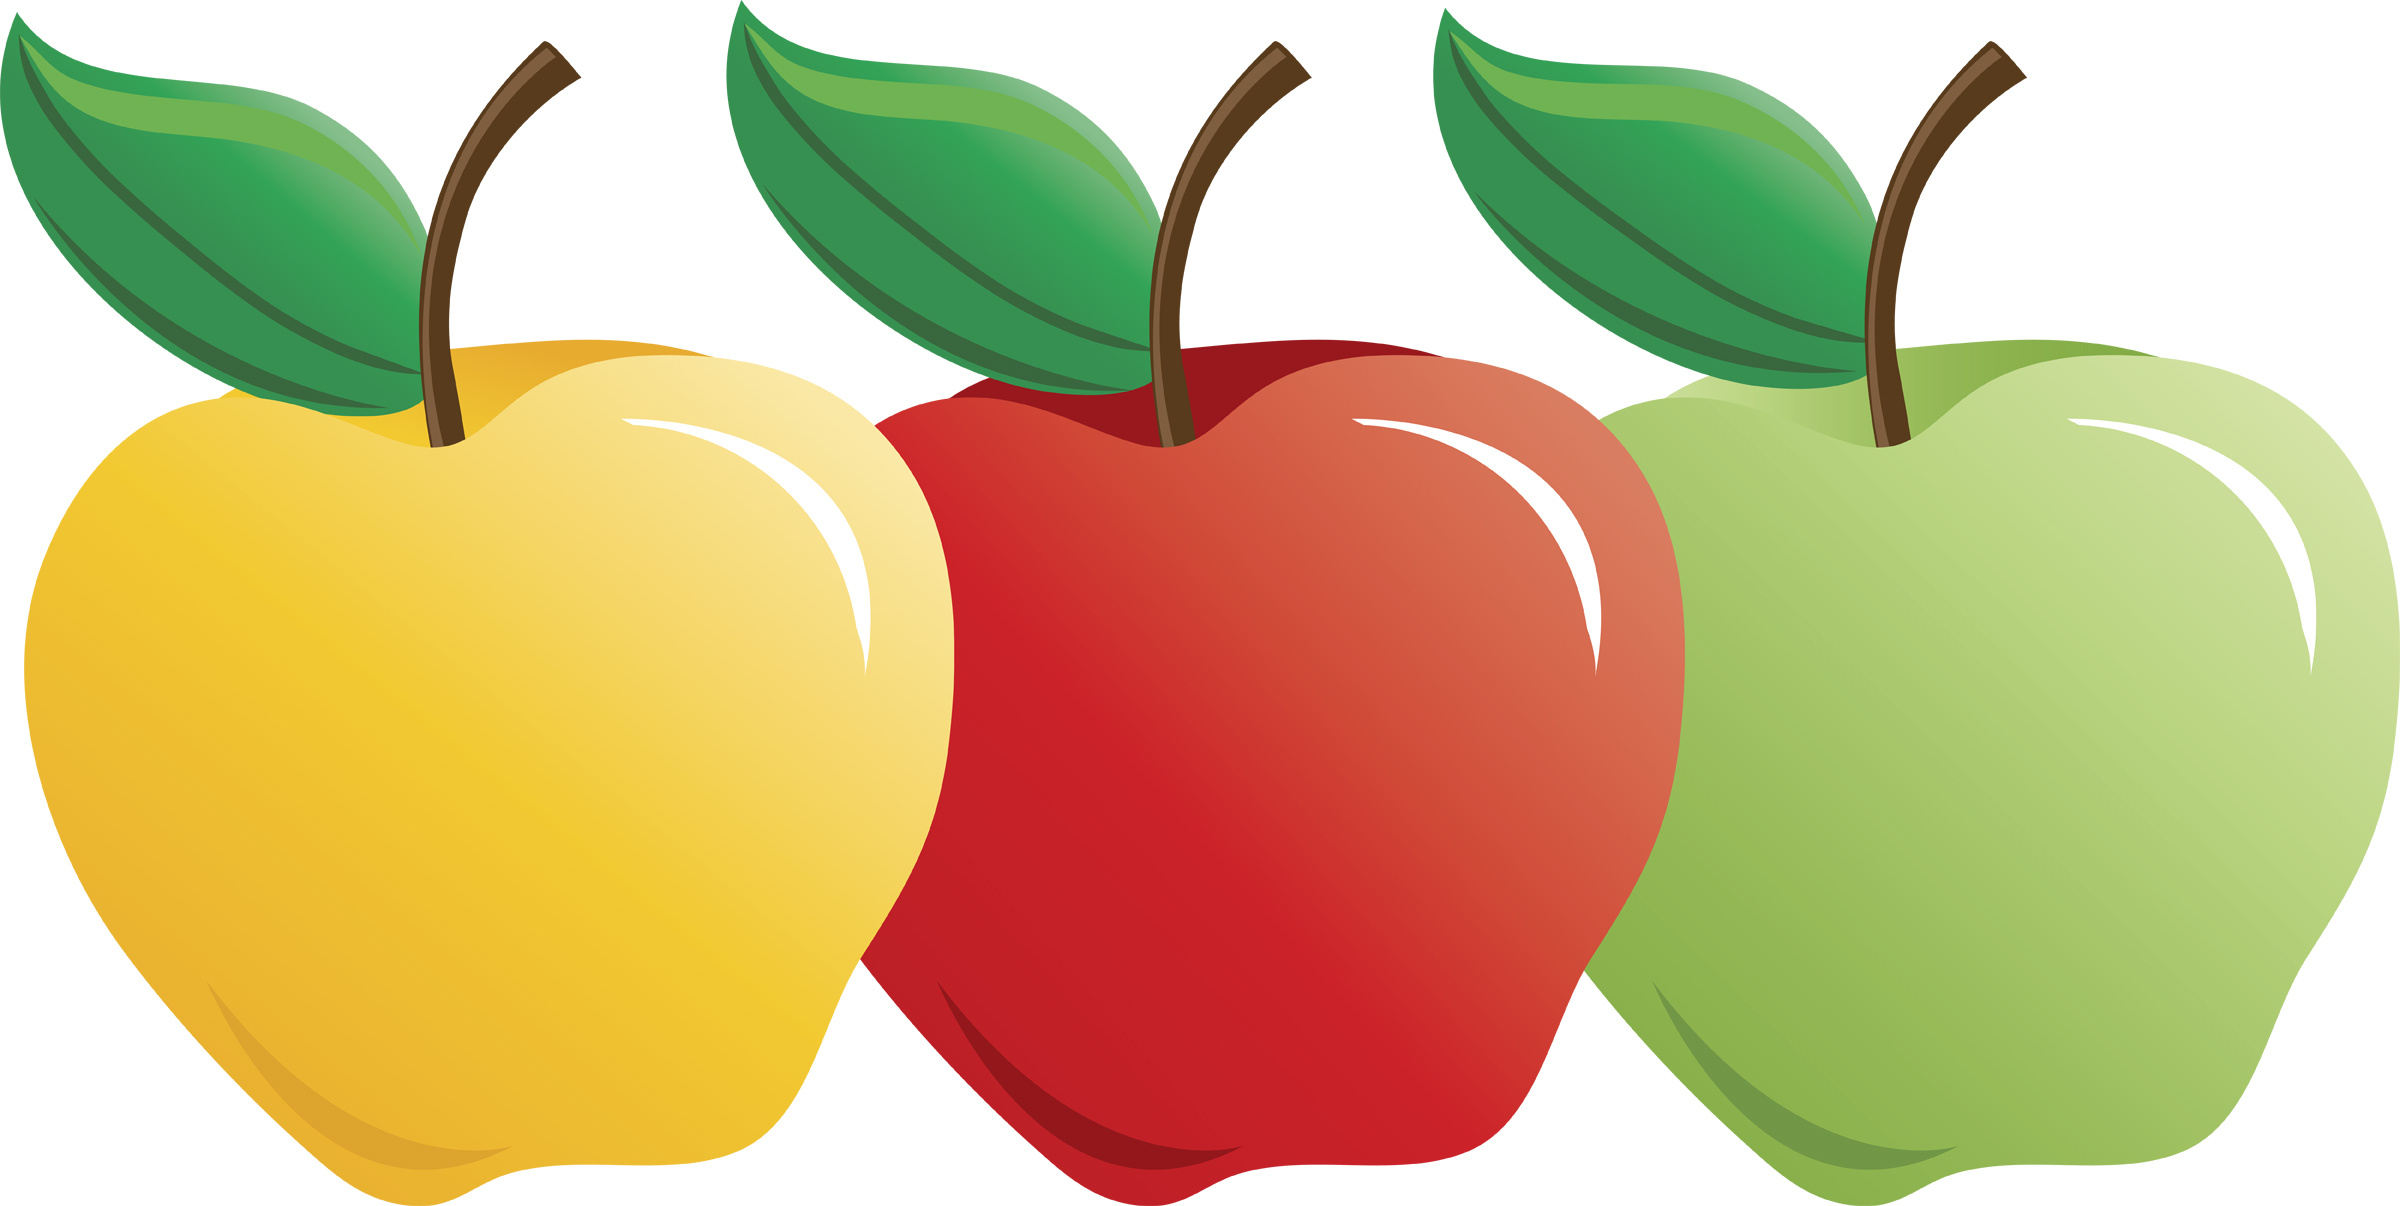 Apple clip art free. Apples clipart